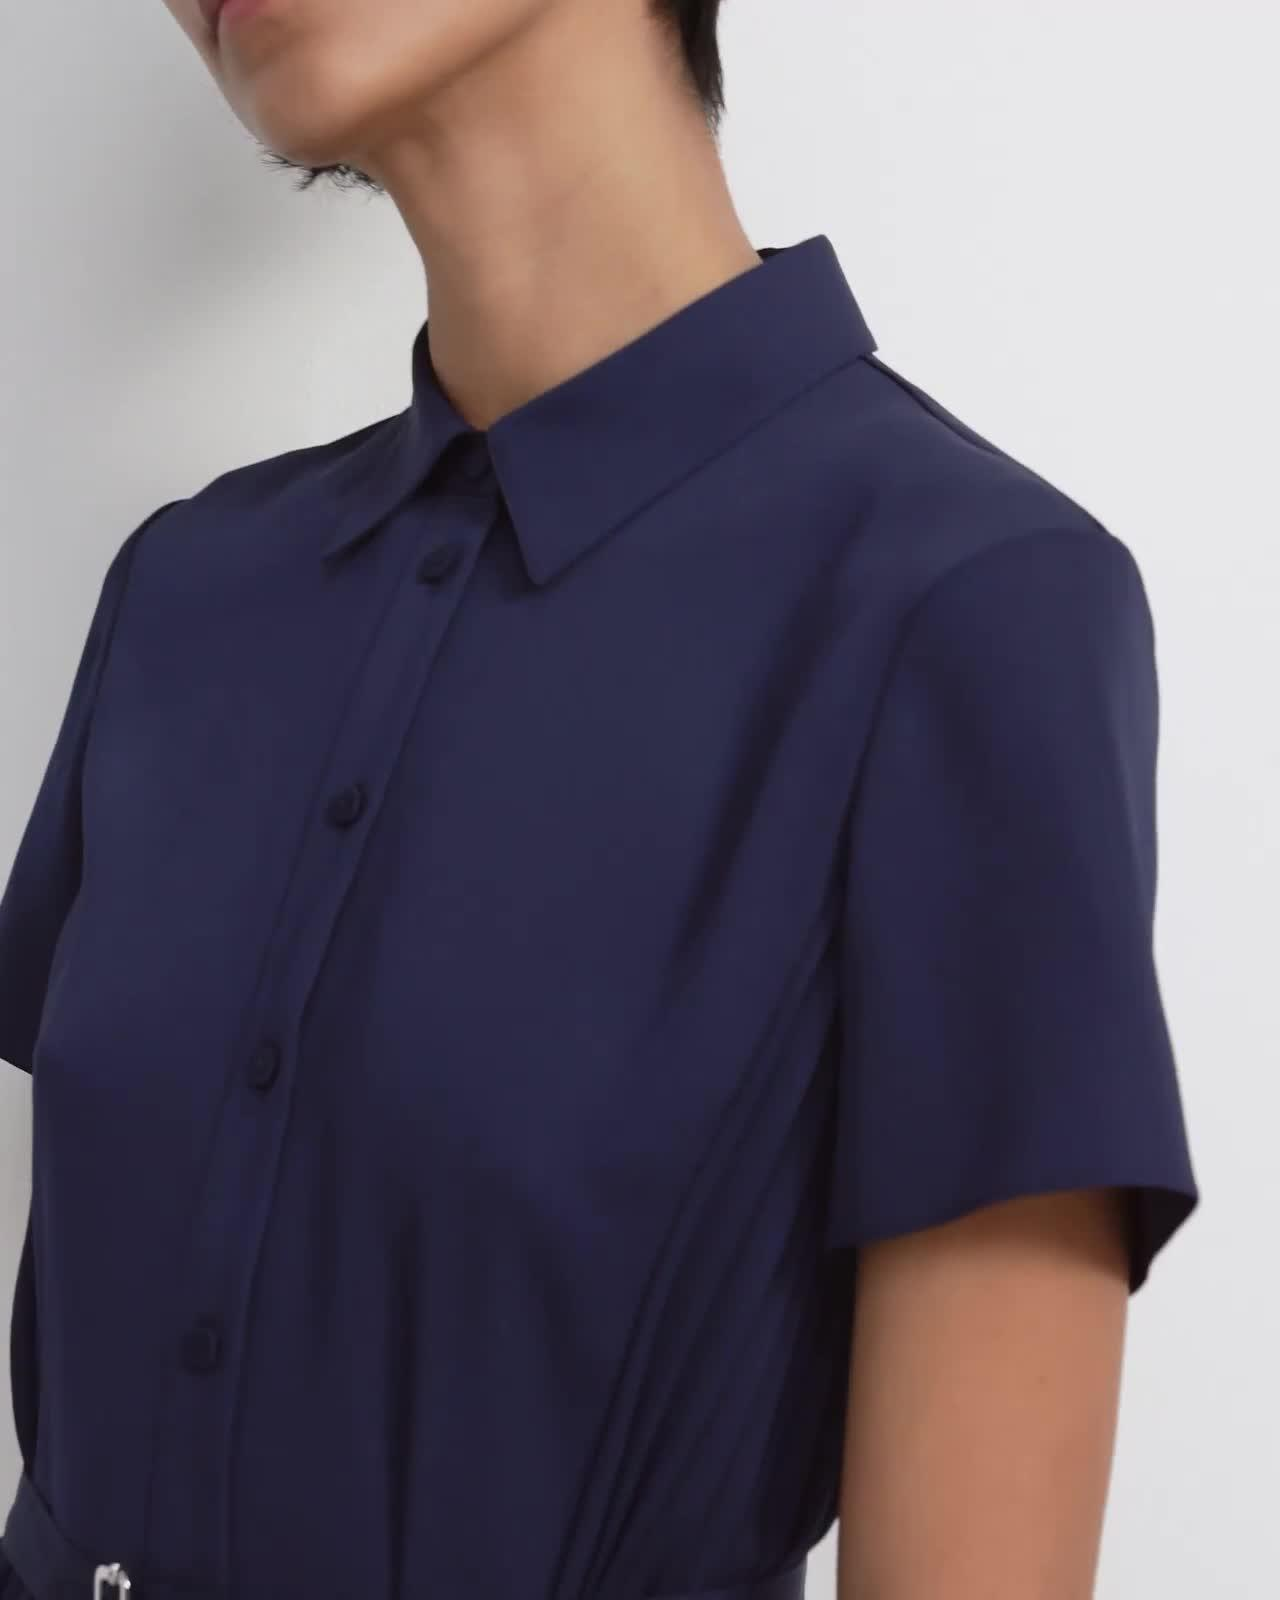 Pleated Short-Sleeve Shirtdress in Satin Crepe 4